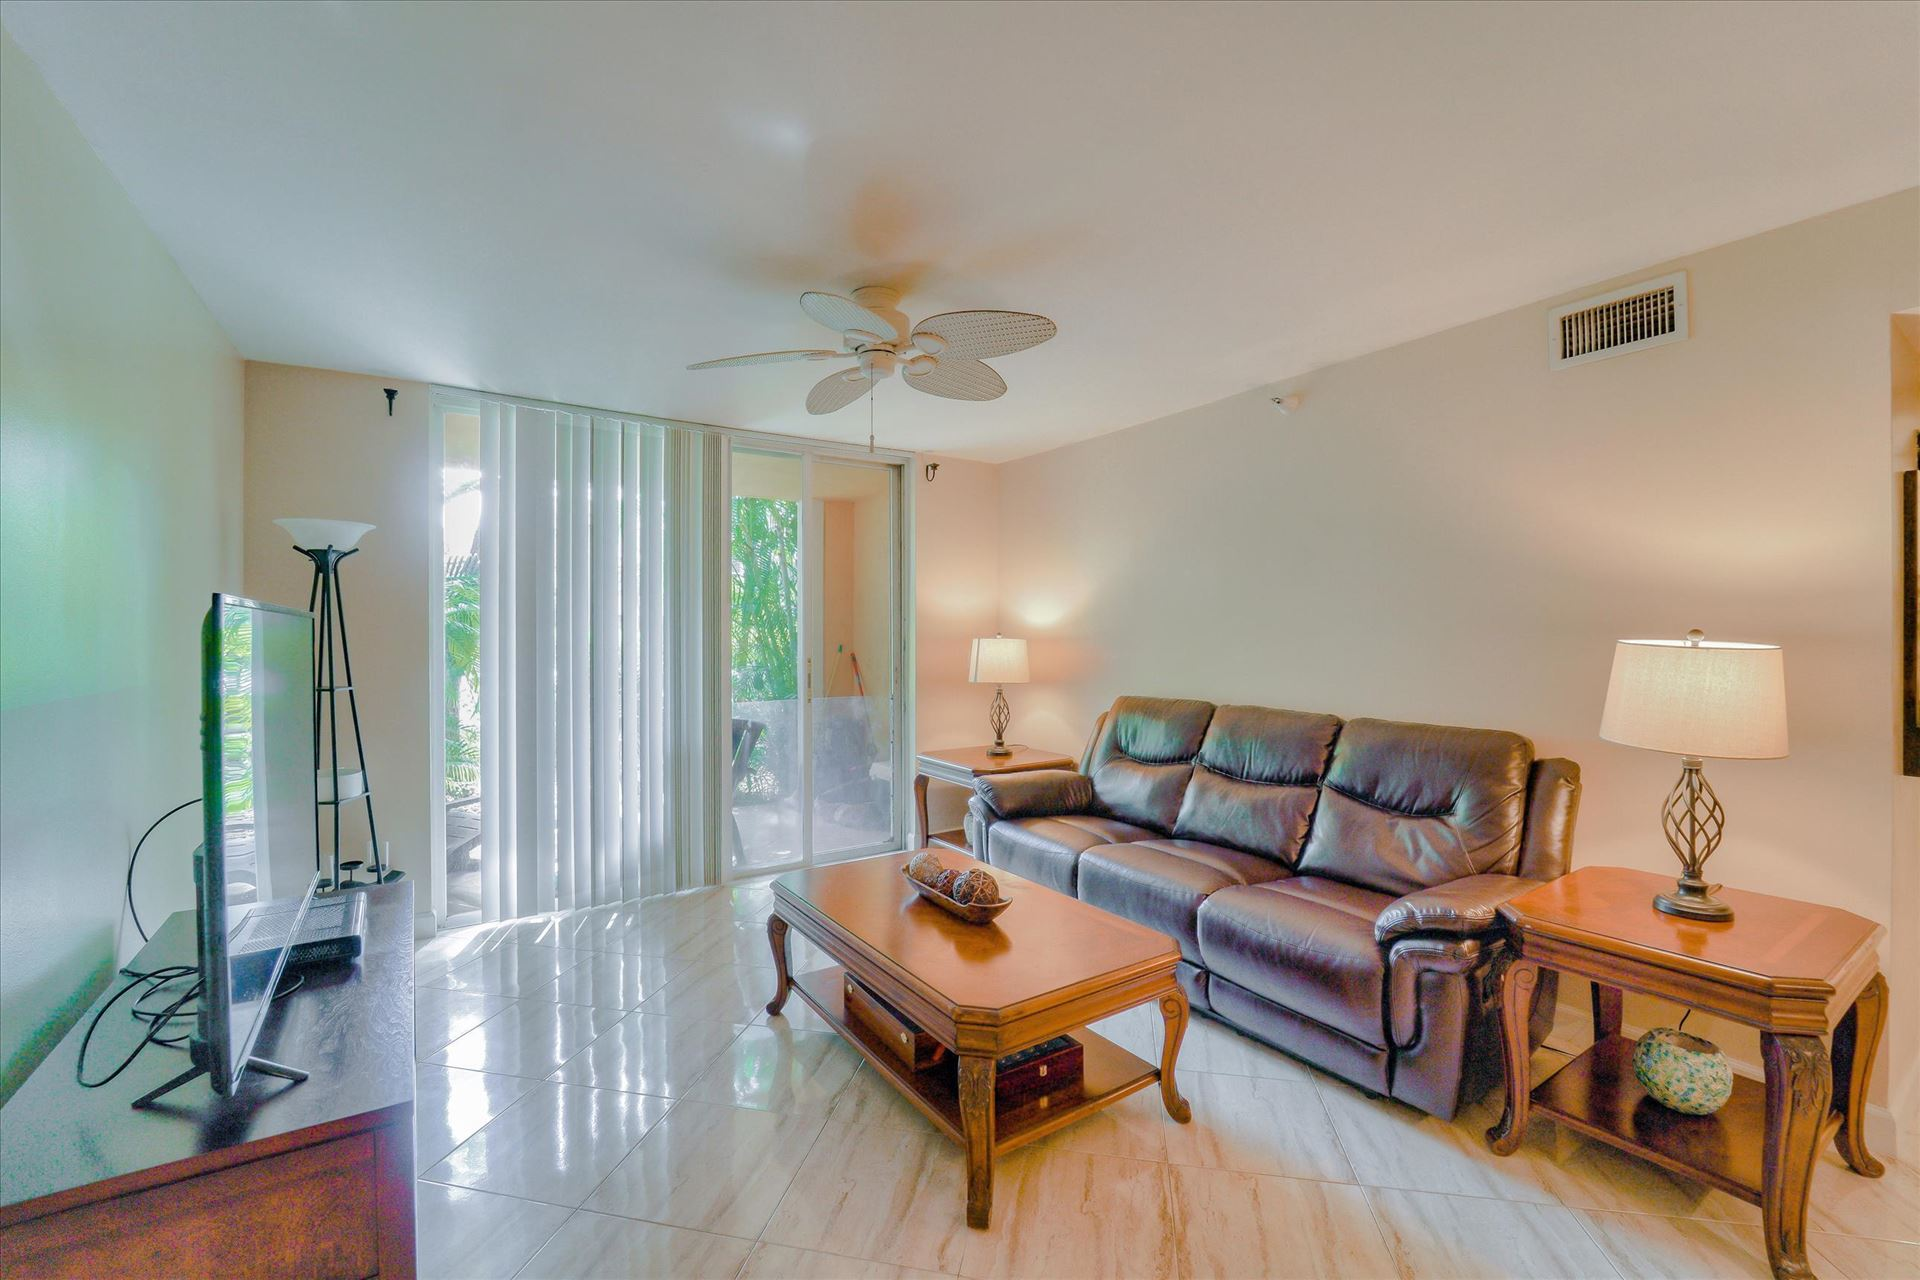 160 Yacht Club Way #108, Hypoluxo, FL 33462 - #: RX-10675298